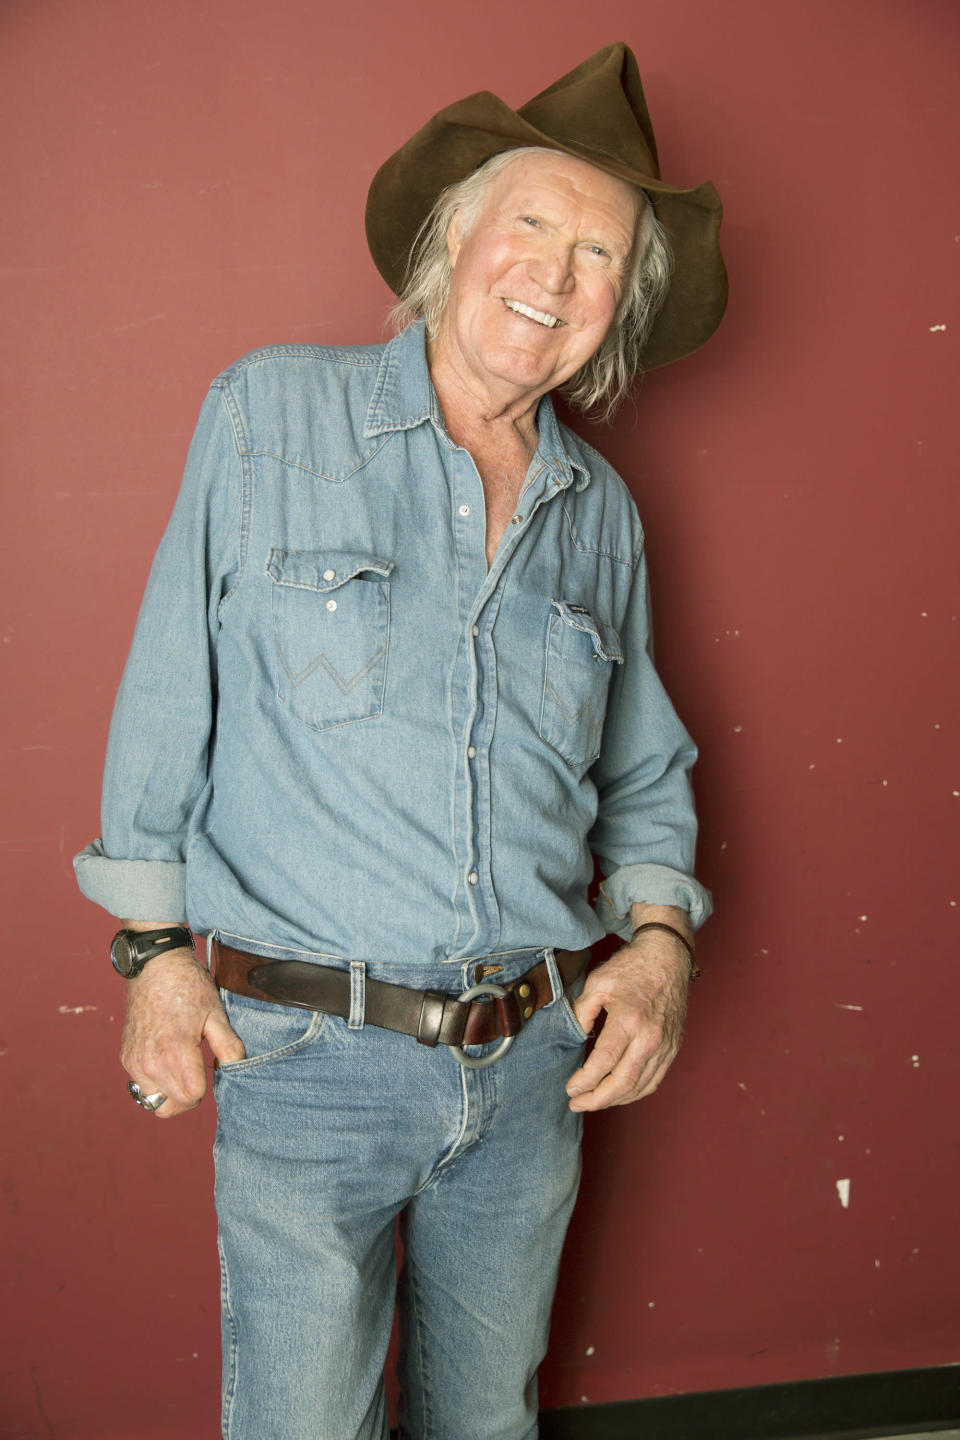 "FILE - Artist Billy Joe Shaver poses backstage following his concert ""Billy Joe Shaver presented by WMOT/Roots Radio"" at City Winery Nashville in Nashville, Tenn. on April 1, 2017. Shaver, who penned songs for Waylon Jennings, Willie Nelson and Bobby Bare, has died. His friend Connie Nelson said he died Wednesday in Texas following a stroke. He was 81. (Photo by Laura Roberts/Invision/AP, File)"